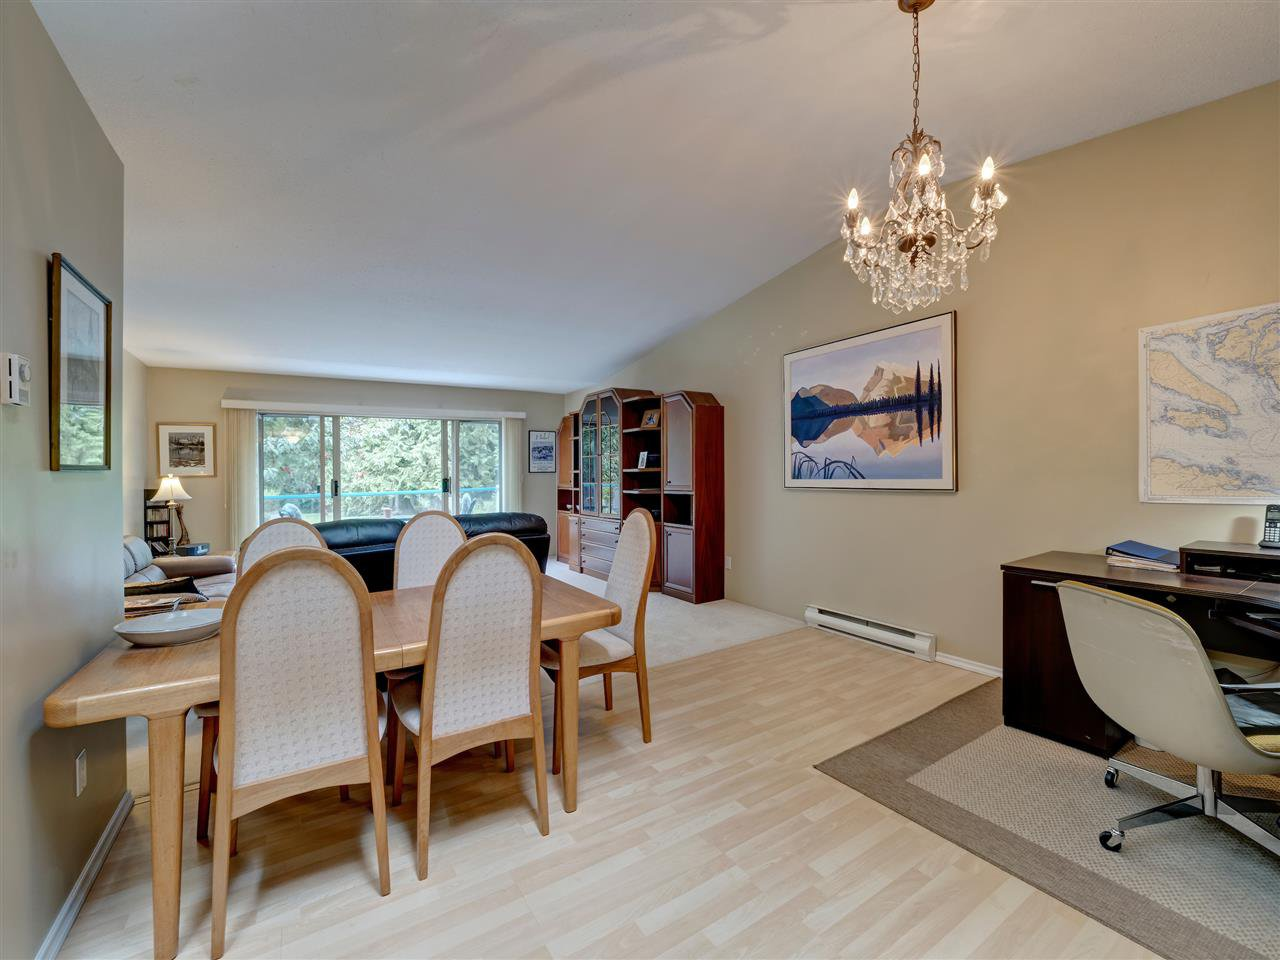 """Photo 9: Photos: 41 555 EAGLECREST Drive in Gibsons: Gibsons & Area Townhouse for sale in """"GEORGIA MIRAGE"""" (Sunshine Coast)  : MLS®# R2485008"""